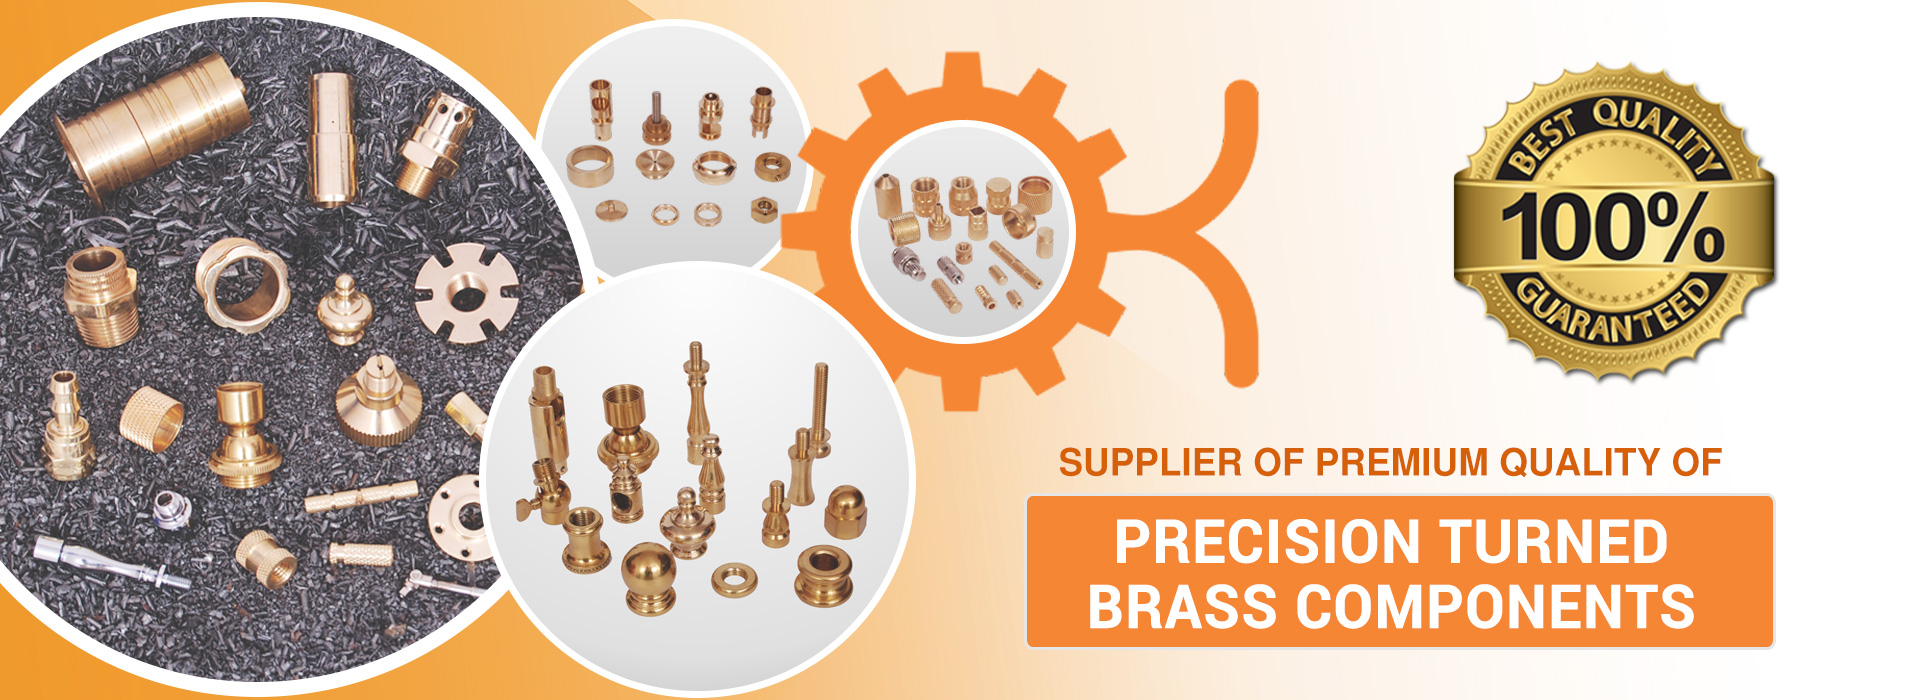 Precision Turned Brass Components Manufacturer